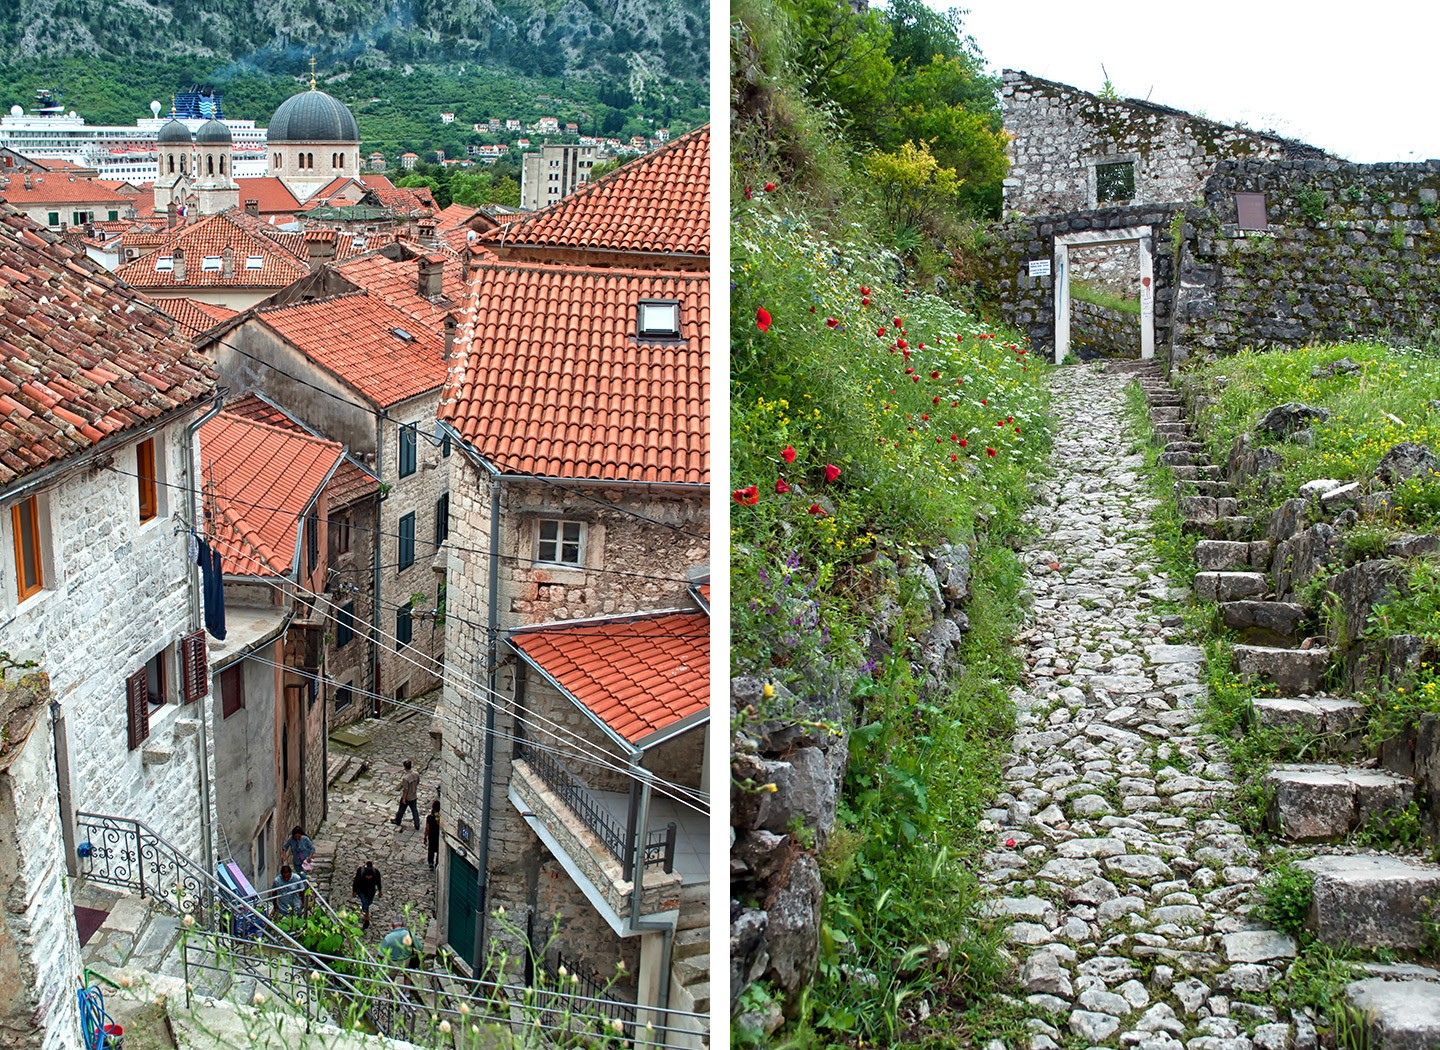 The fortified city walls of Kotor, Montenegro